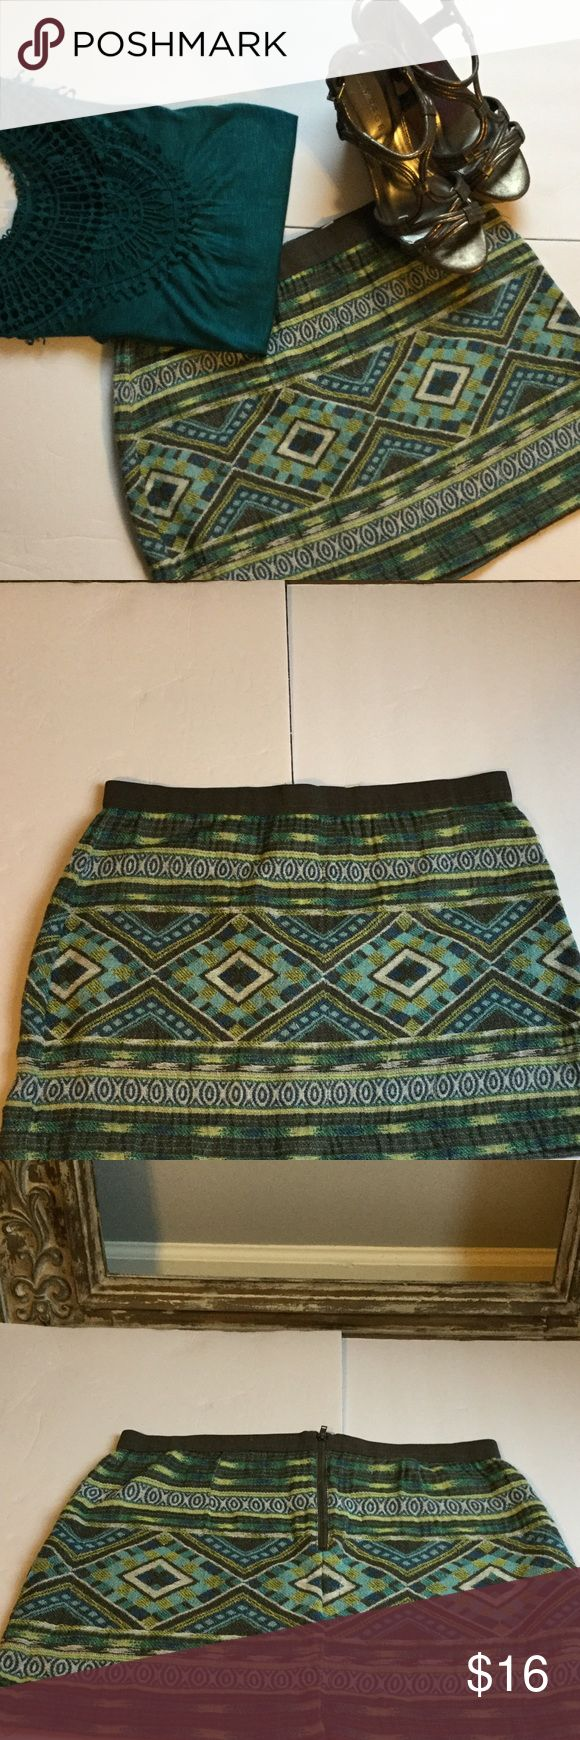 "NEW LISTING American Eagle outfitters Skirt❤️❤️❤️ NEW LISTING American Eagle outfitters Aztec print skirt. The skirt has a zipper in back as shown. The skirt is approx 15"" from top of hem to bottom. The skirt is in good used condition. American Eagle Outfitters Skirts"